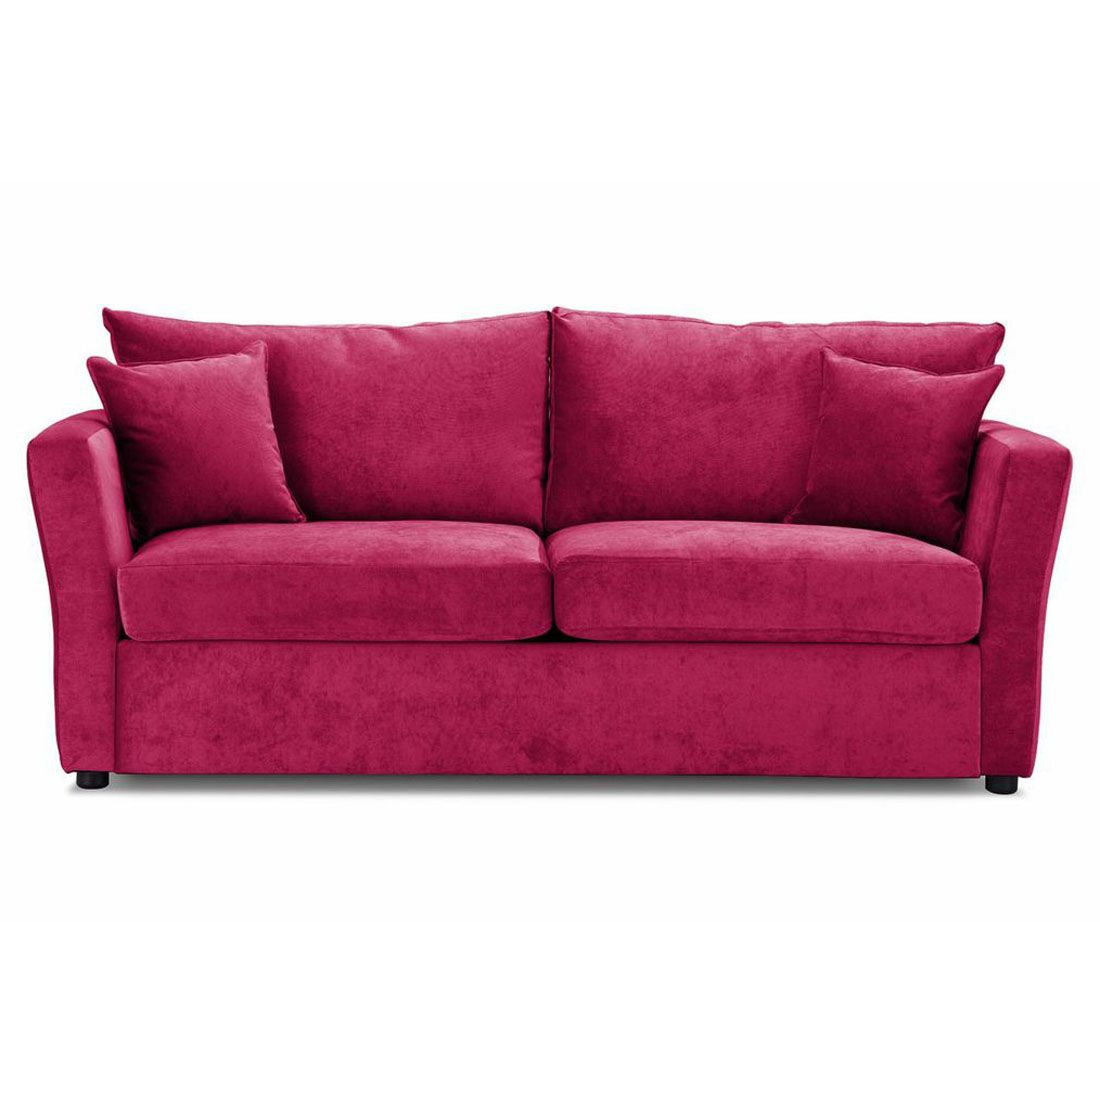 Cambridge Velvet 3 5 Seater Sofa Next